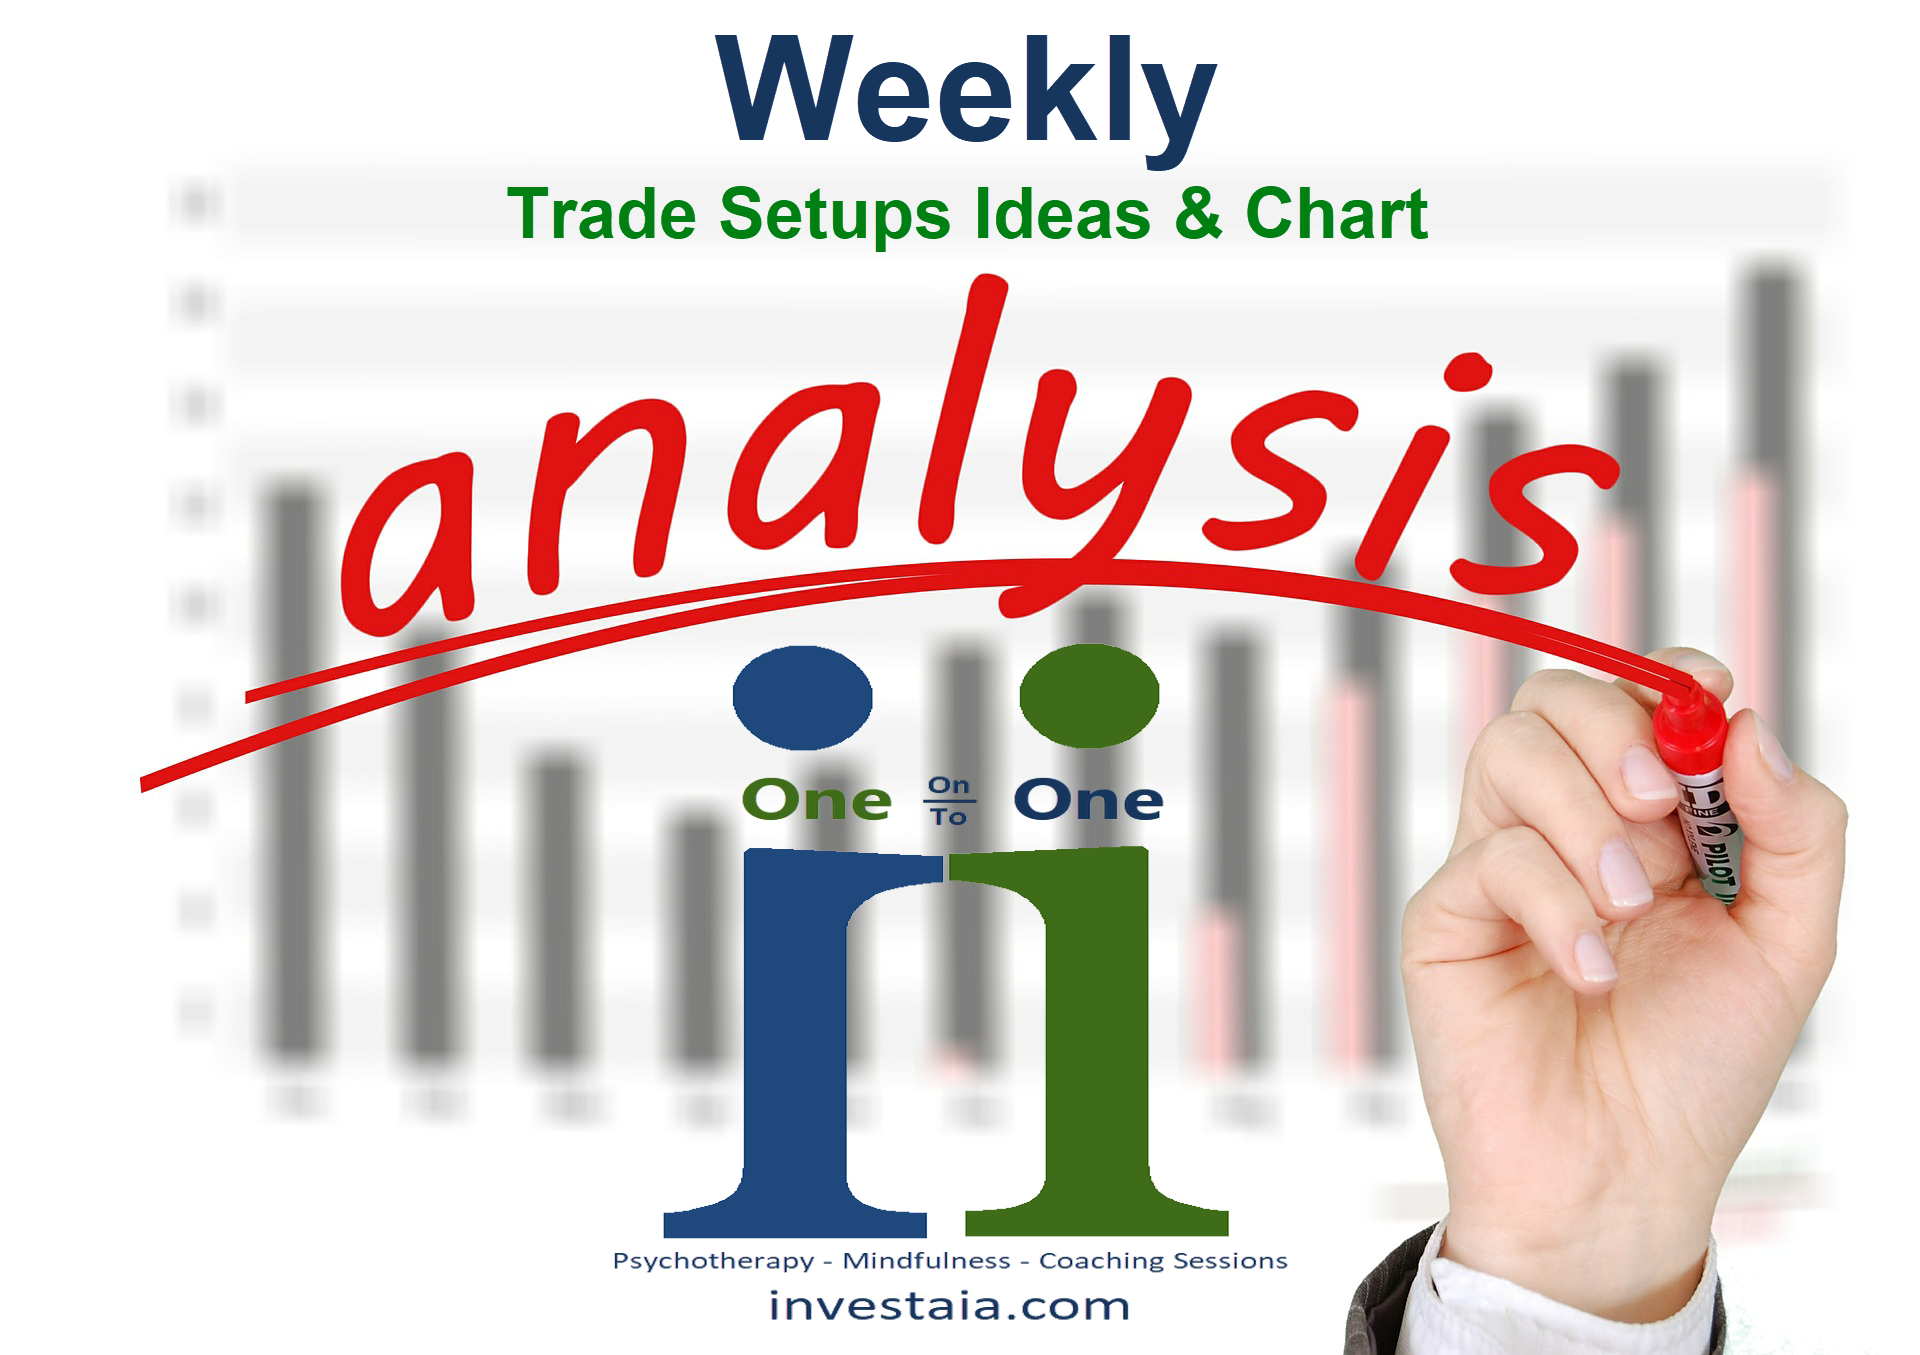 Our Trading View & Plan for Week 10 (17-20-03-2020)